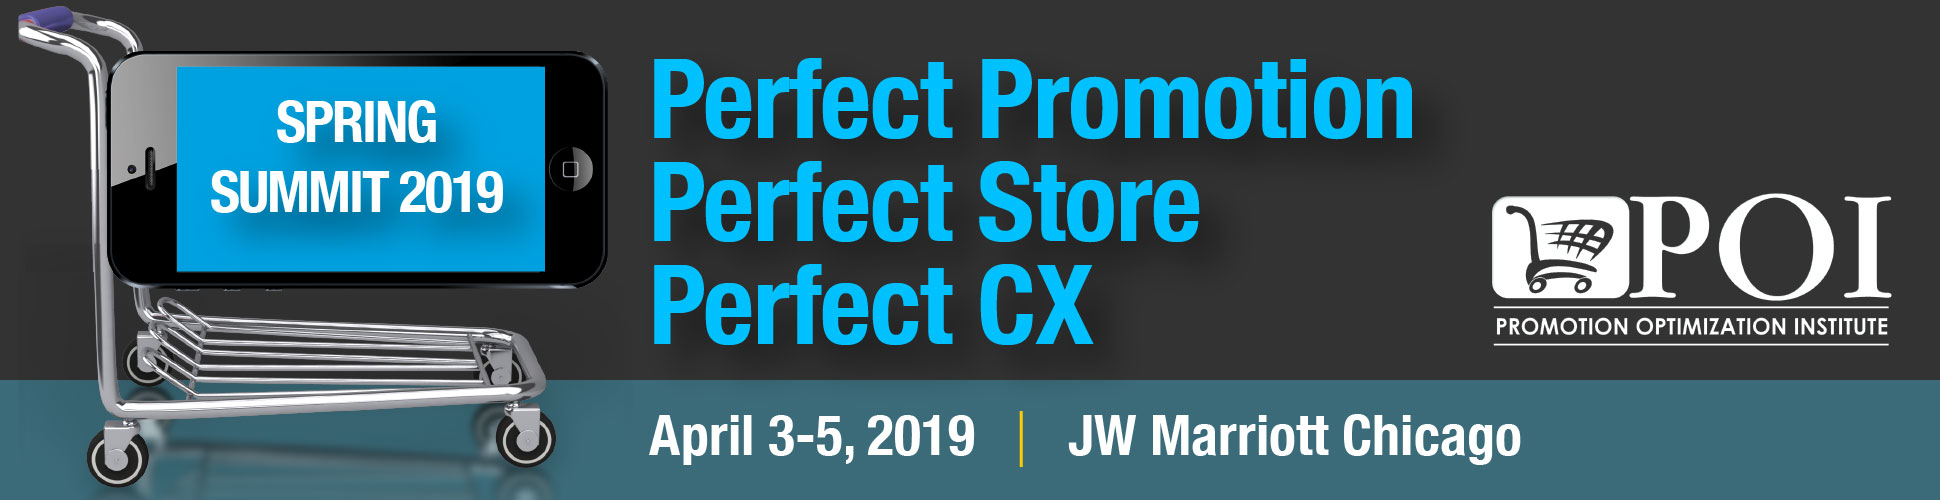 Perfect Promotion, Perfect Store, Perfect CX